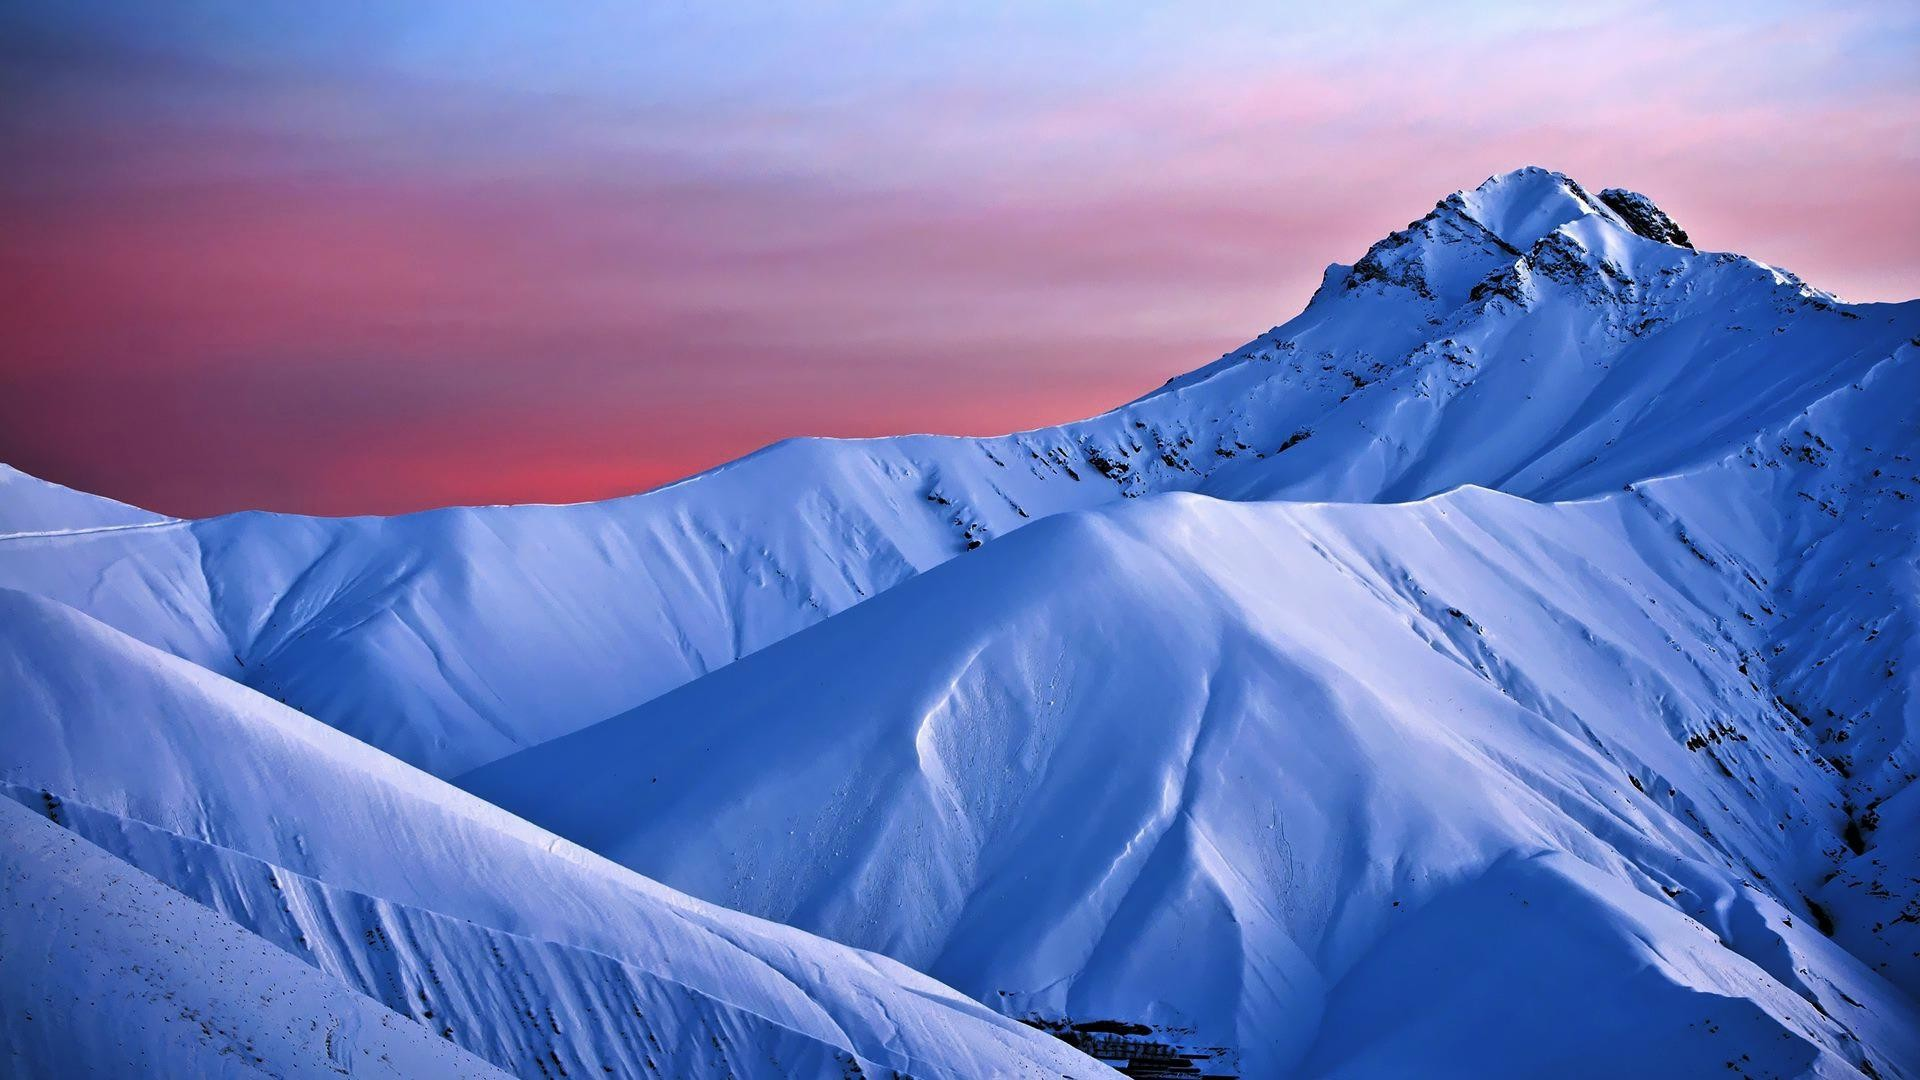 wallpaper.wiki-Snowy-Mountains-HD-Images-PIC-WPE001069